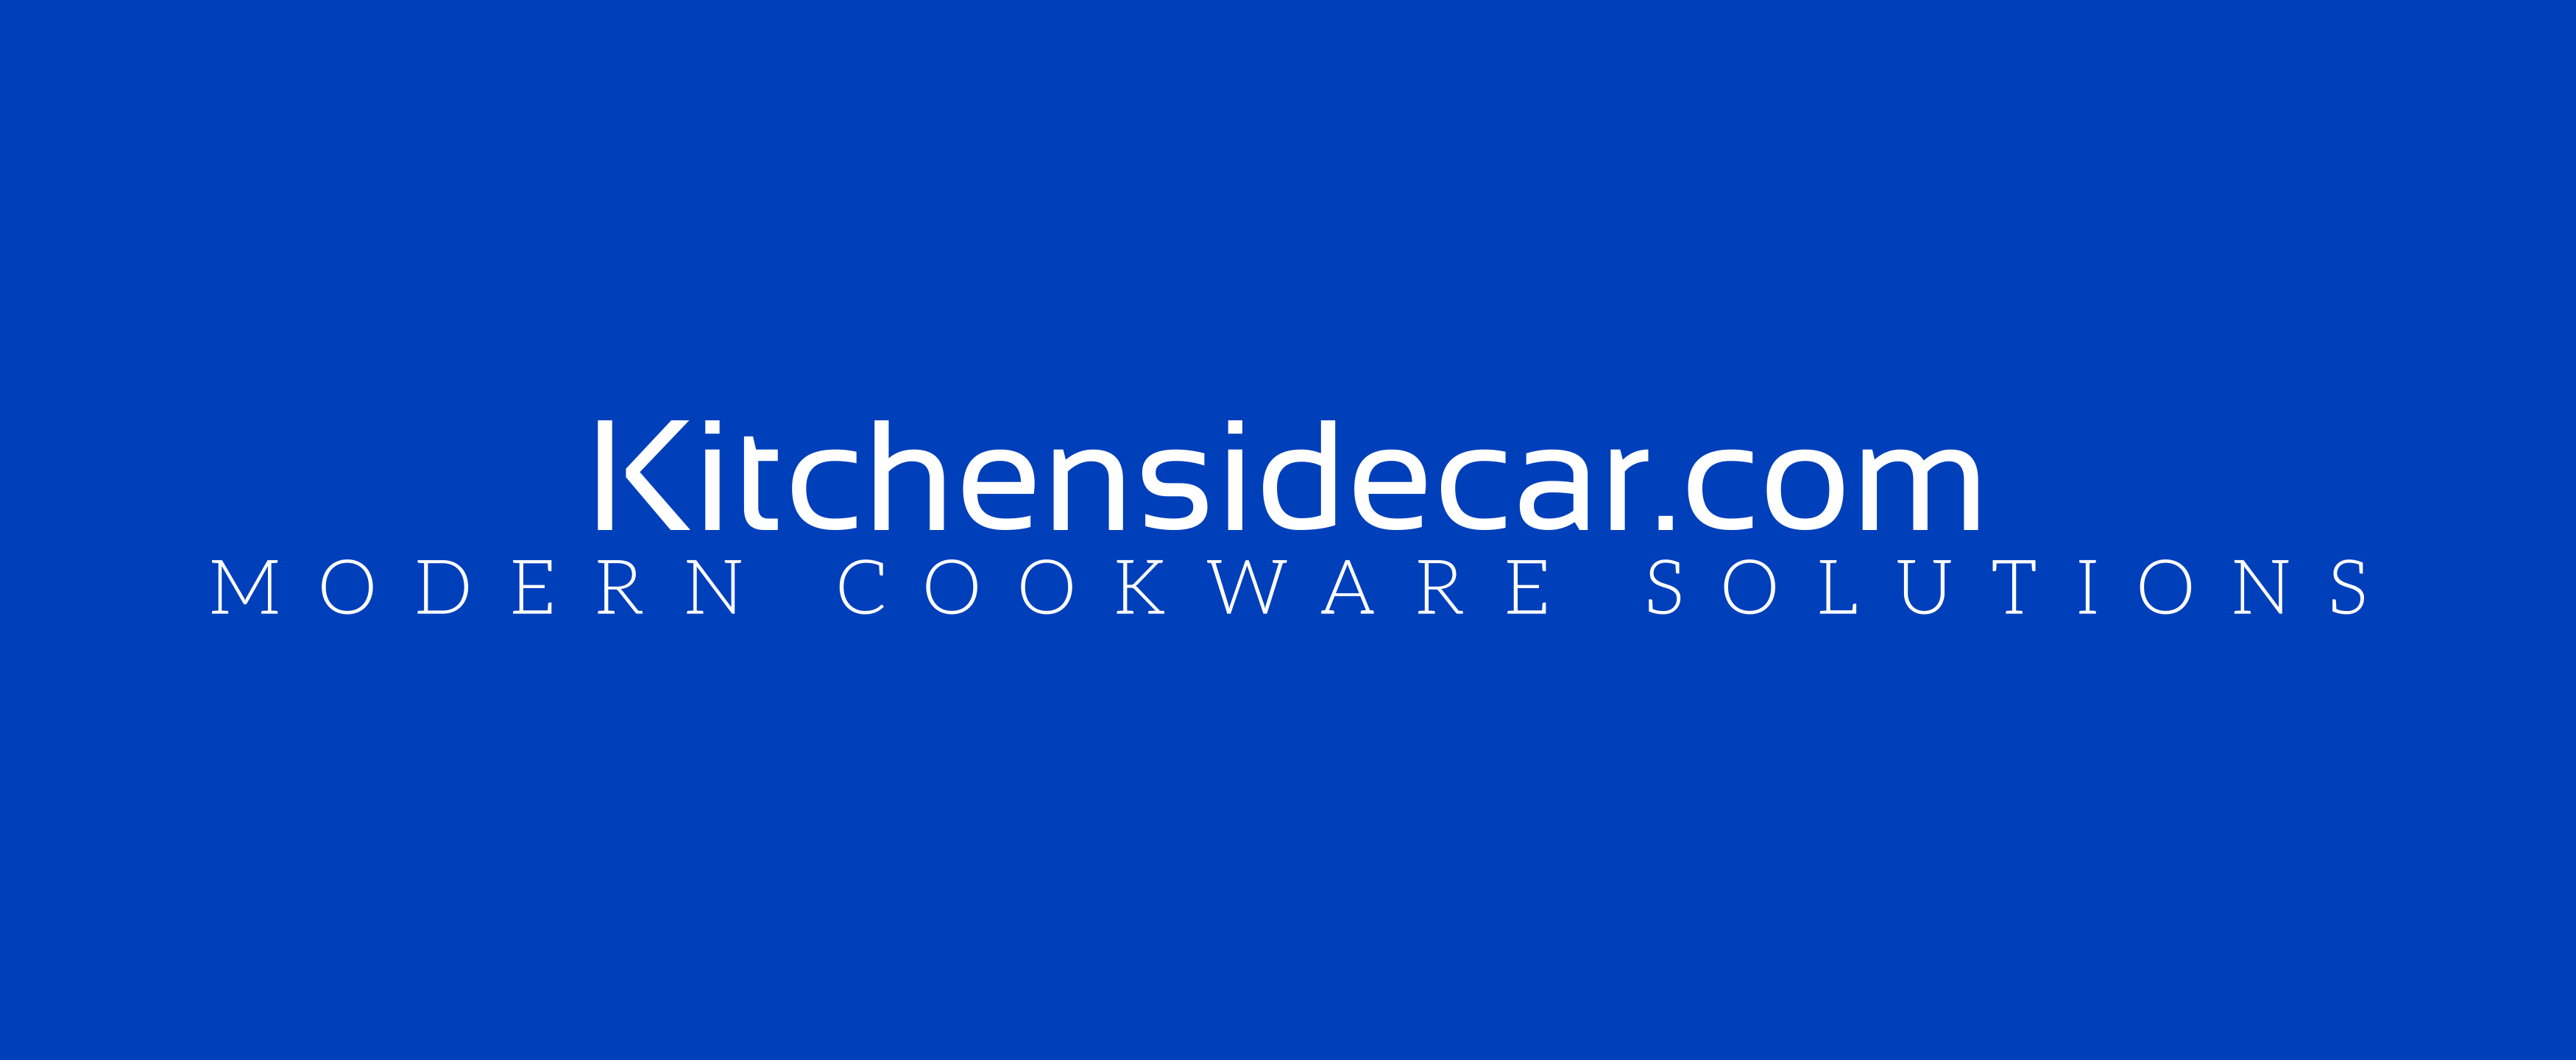 kitchensidecar.com